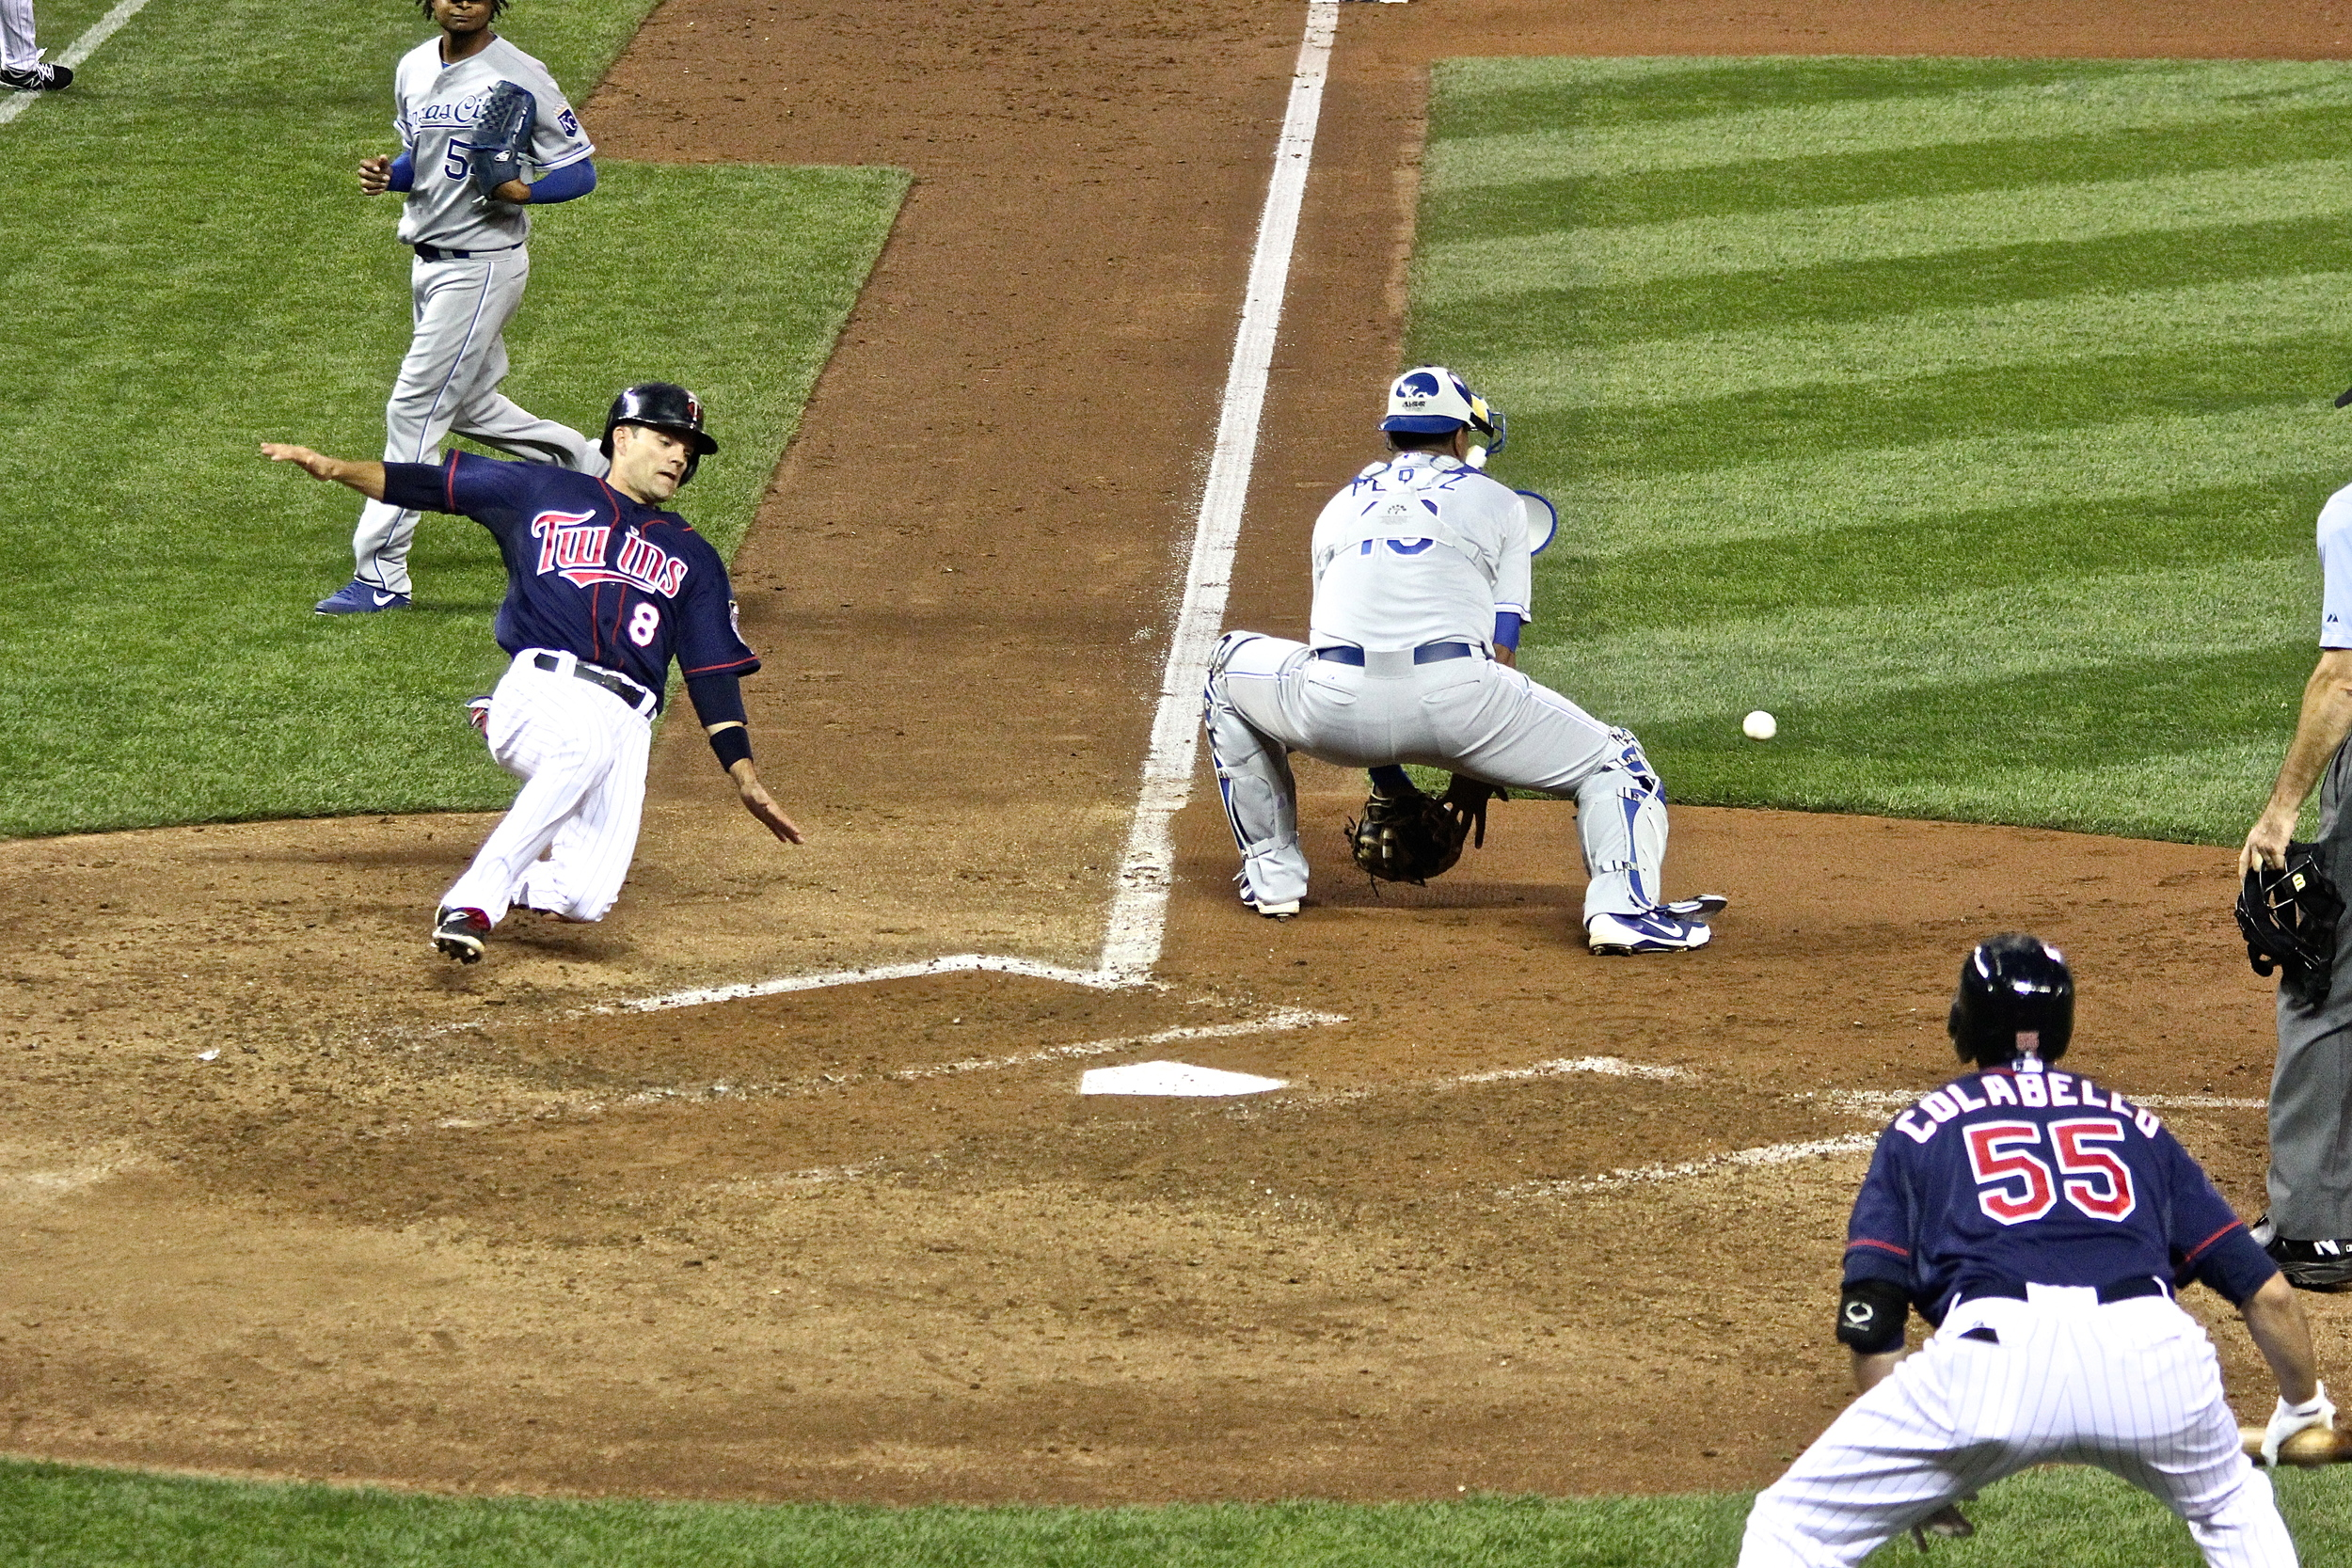 Jamey Carroll play at the plate